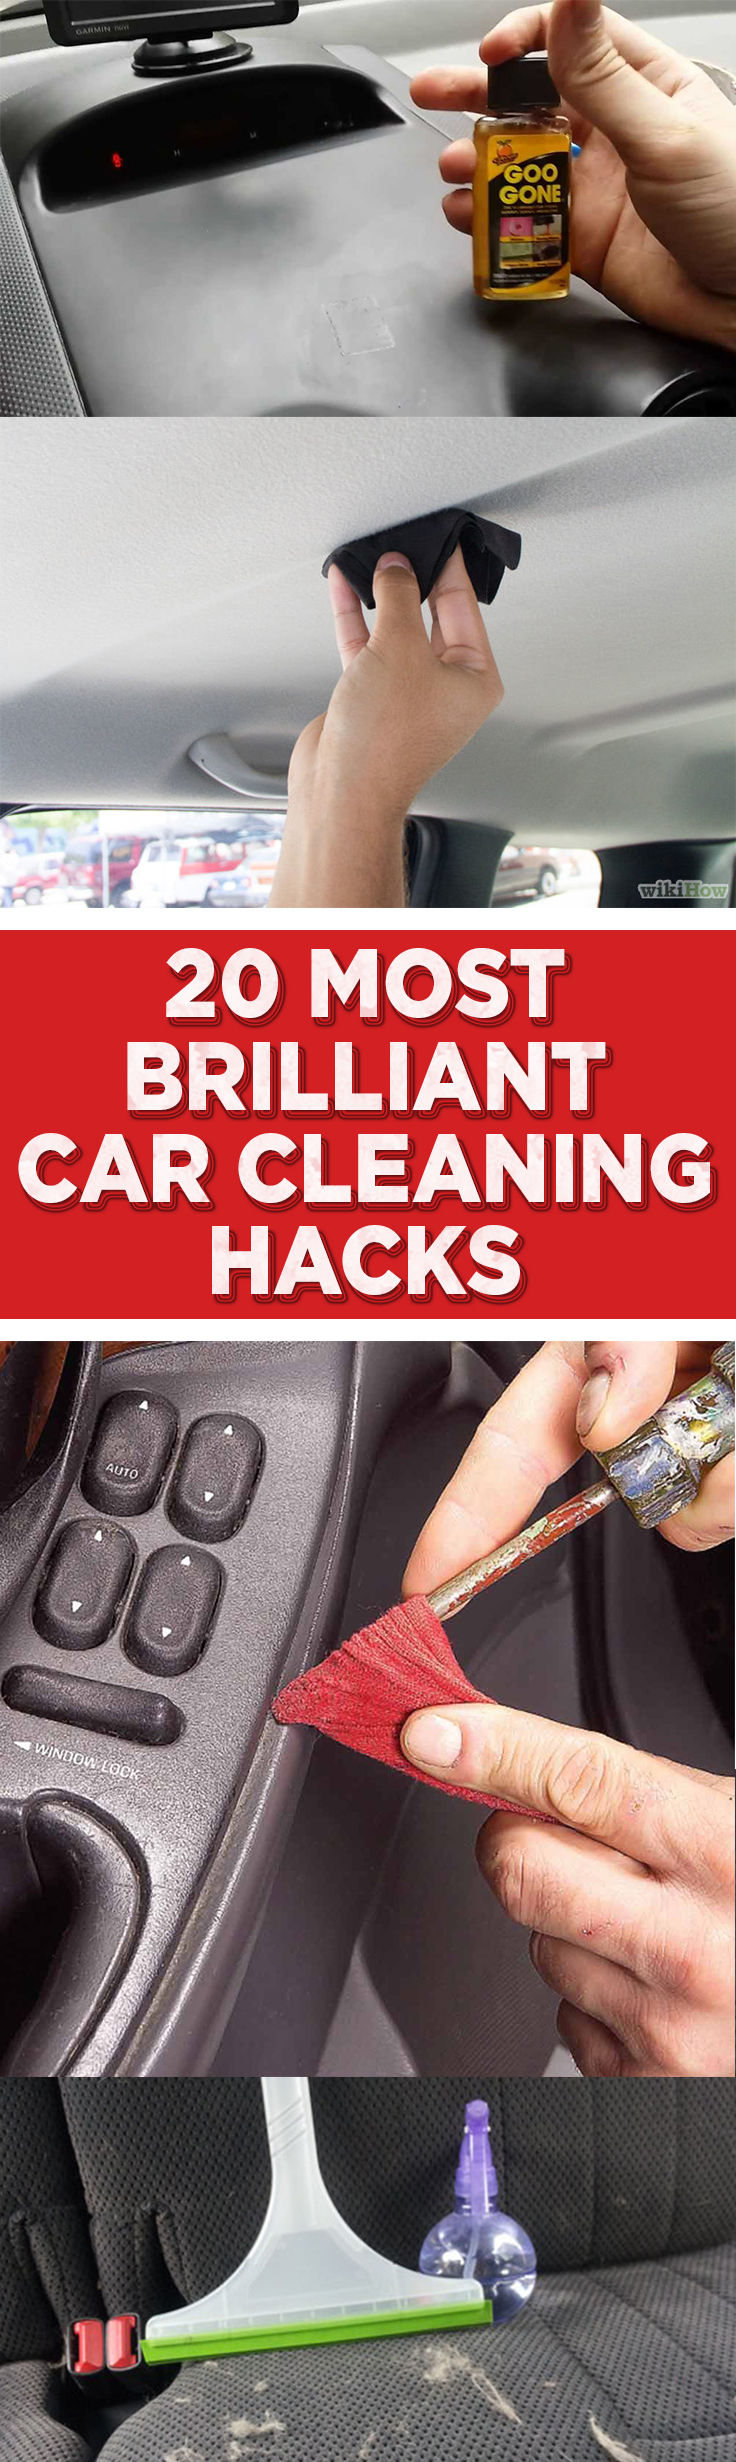 Car cleaning hacks, clean car, car hacks, car detailing, popular pin, car organization, DIY car cleaning. #Cleaning #CleanCar #CleanCarTips #CarOrganization #ClutterFreeCar